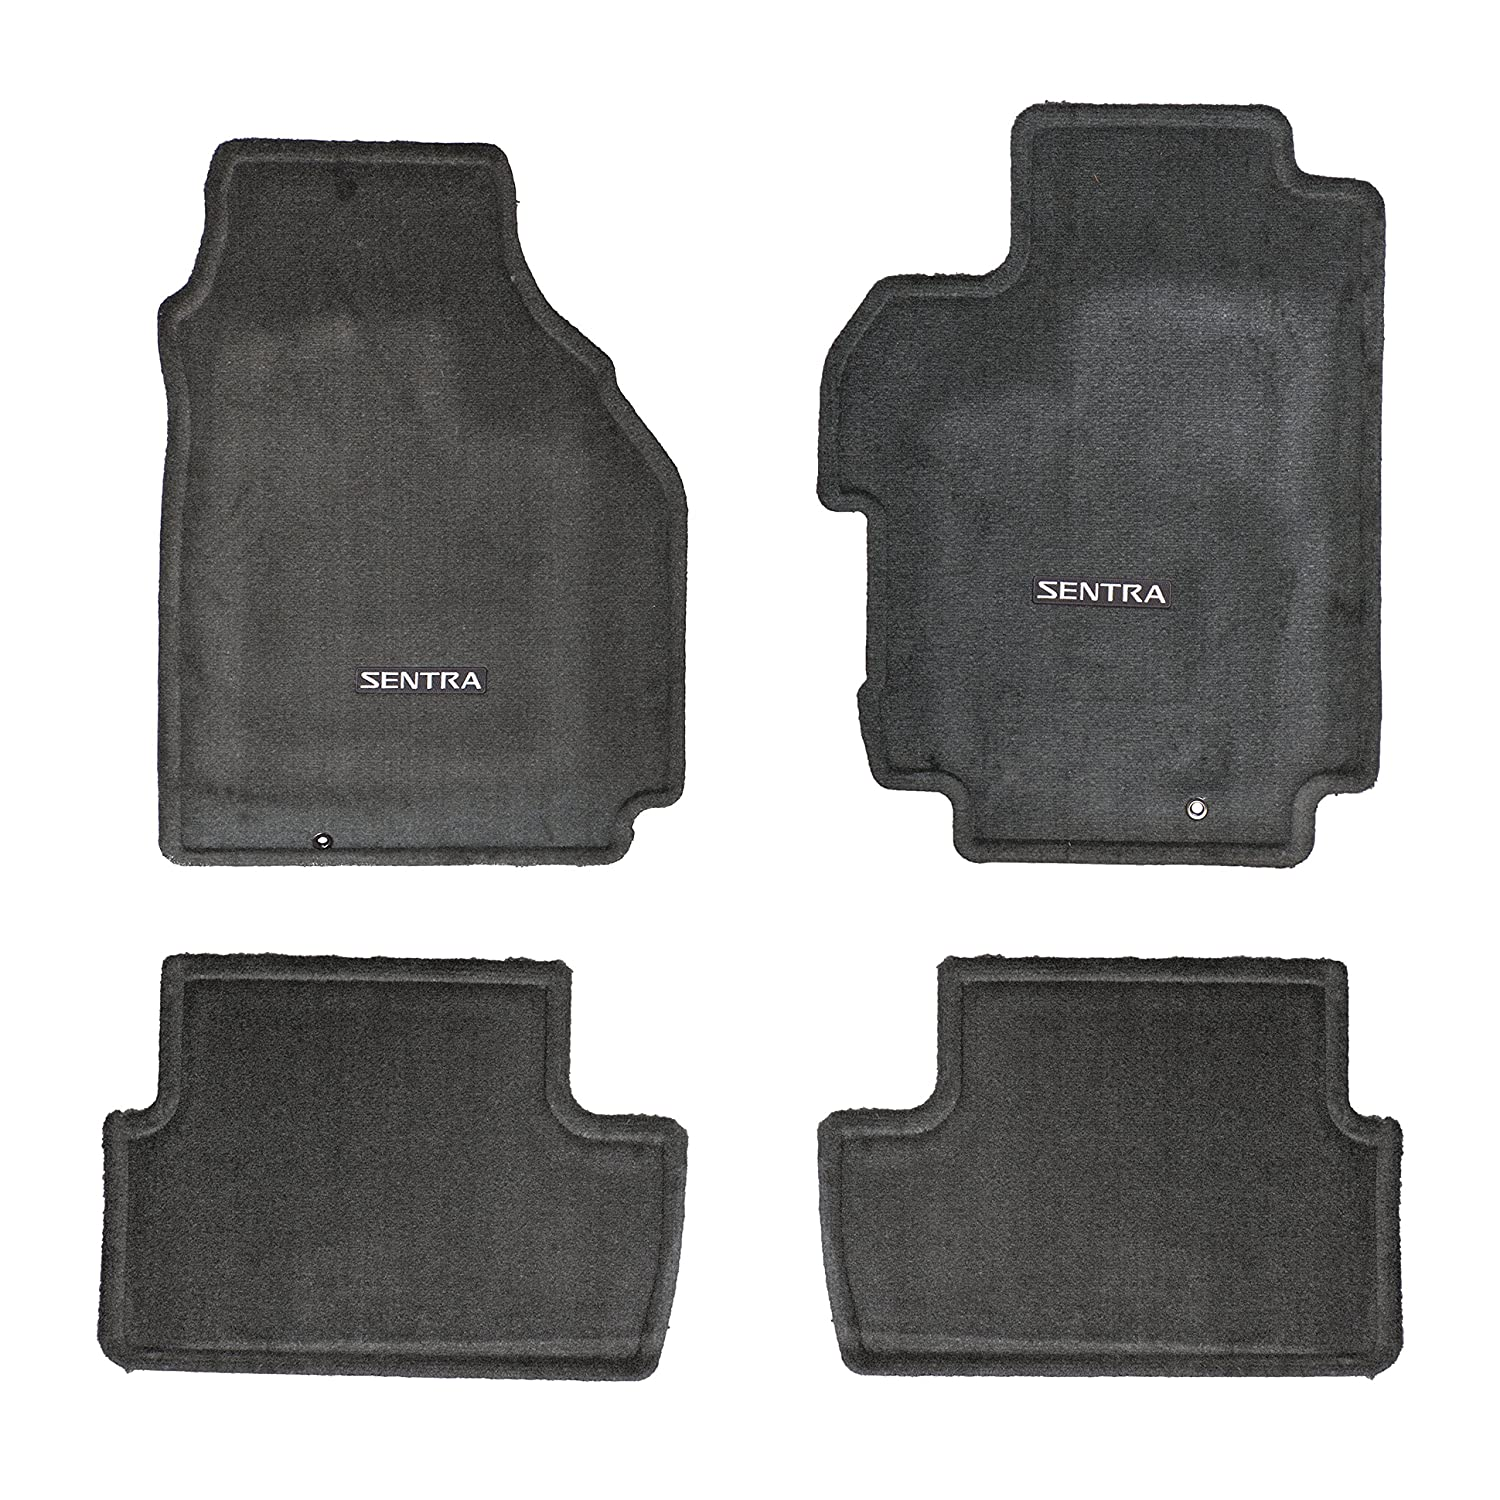 picture s p of oem sentra nissan mats set sand floor front rear